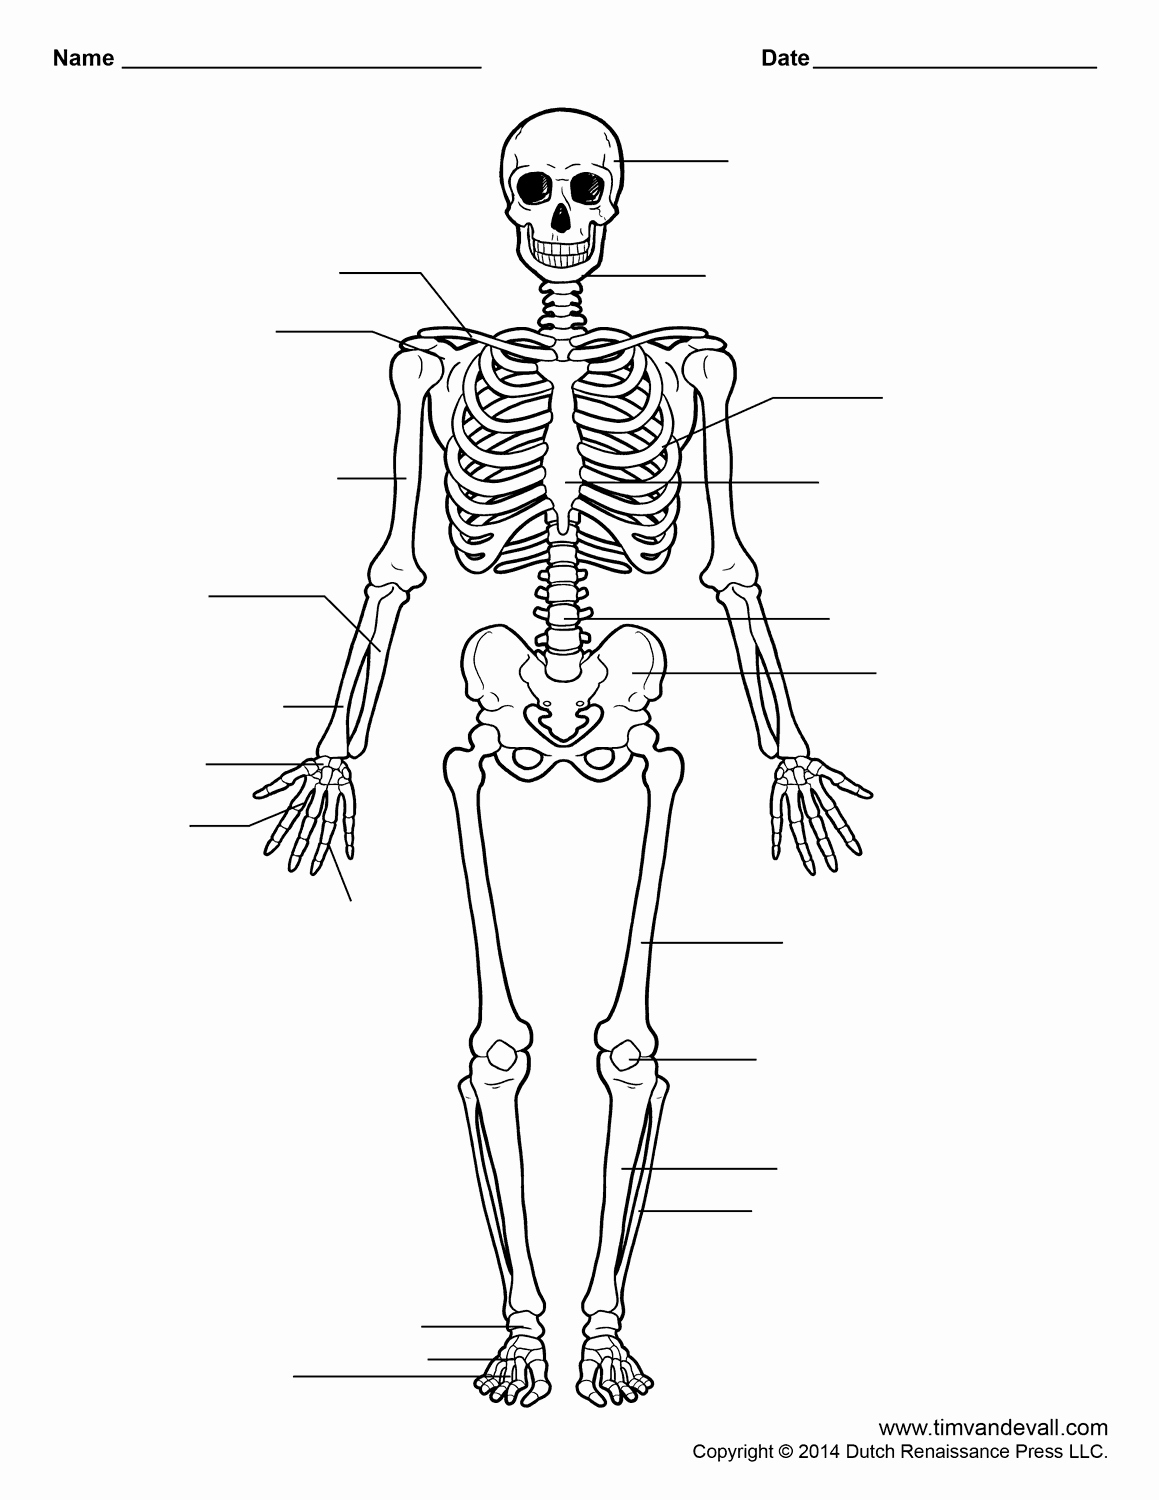 Skeletal System Worksheet Pdf Unique Free Printable Human Skeleton Worksheet for Students and